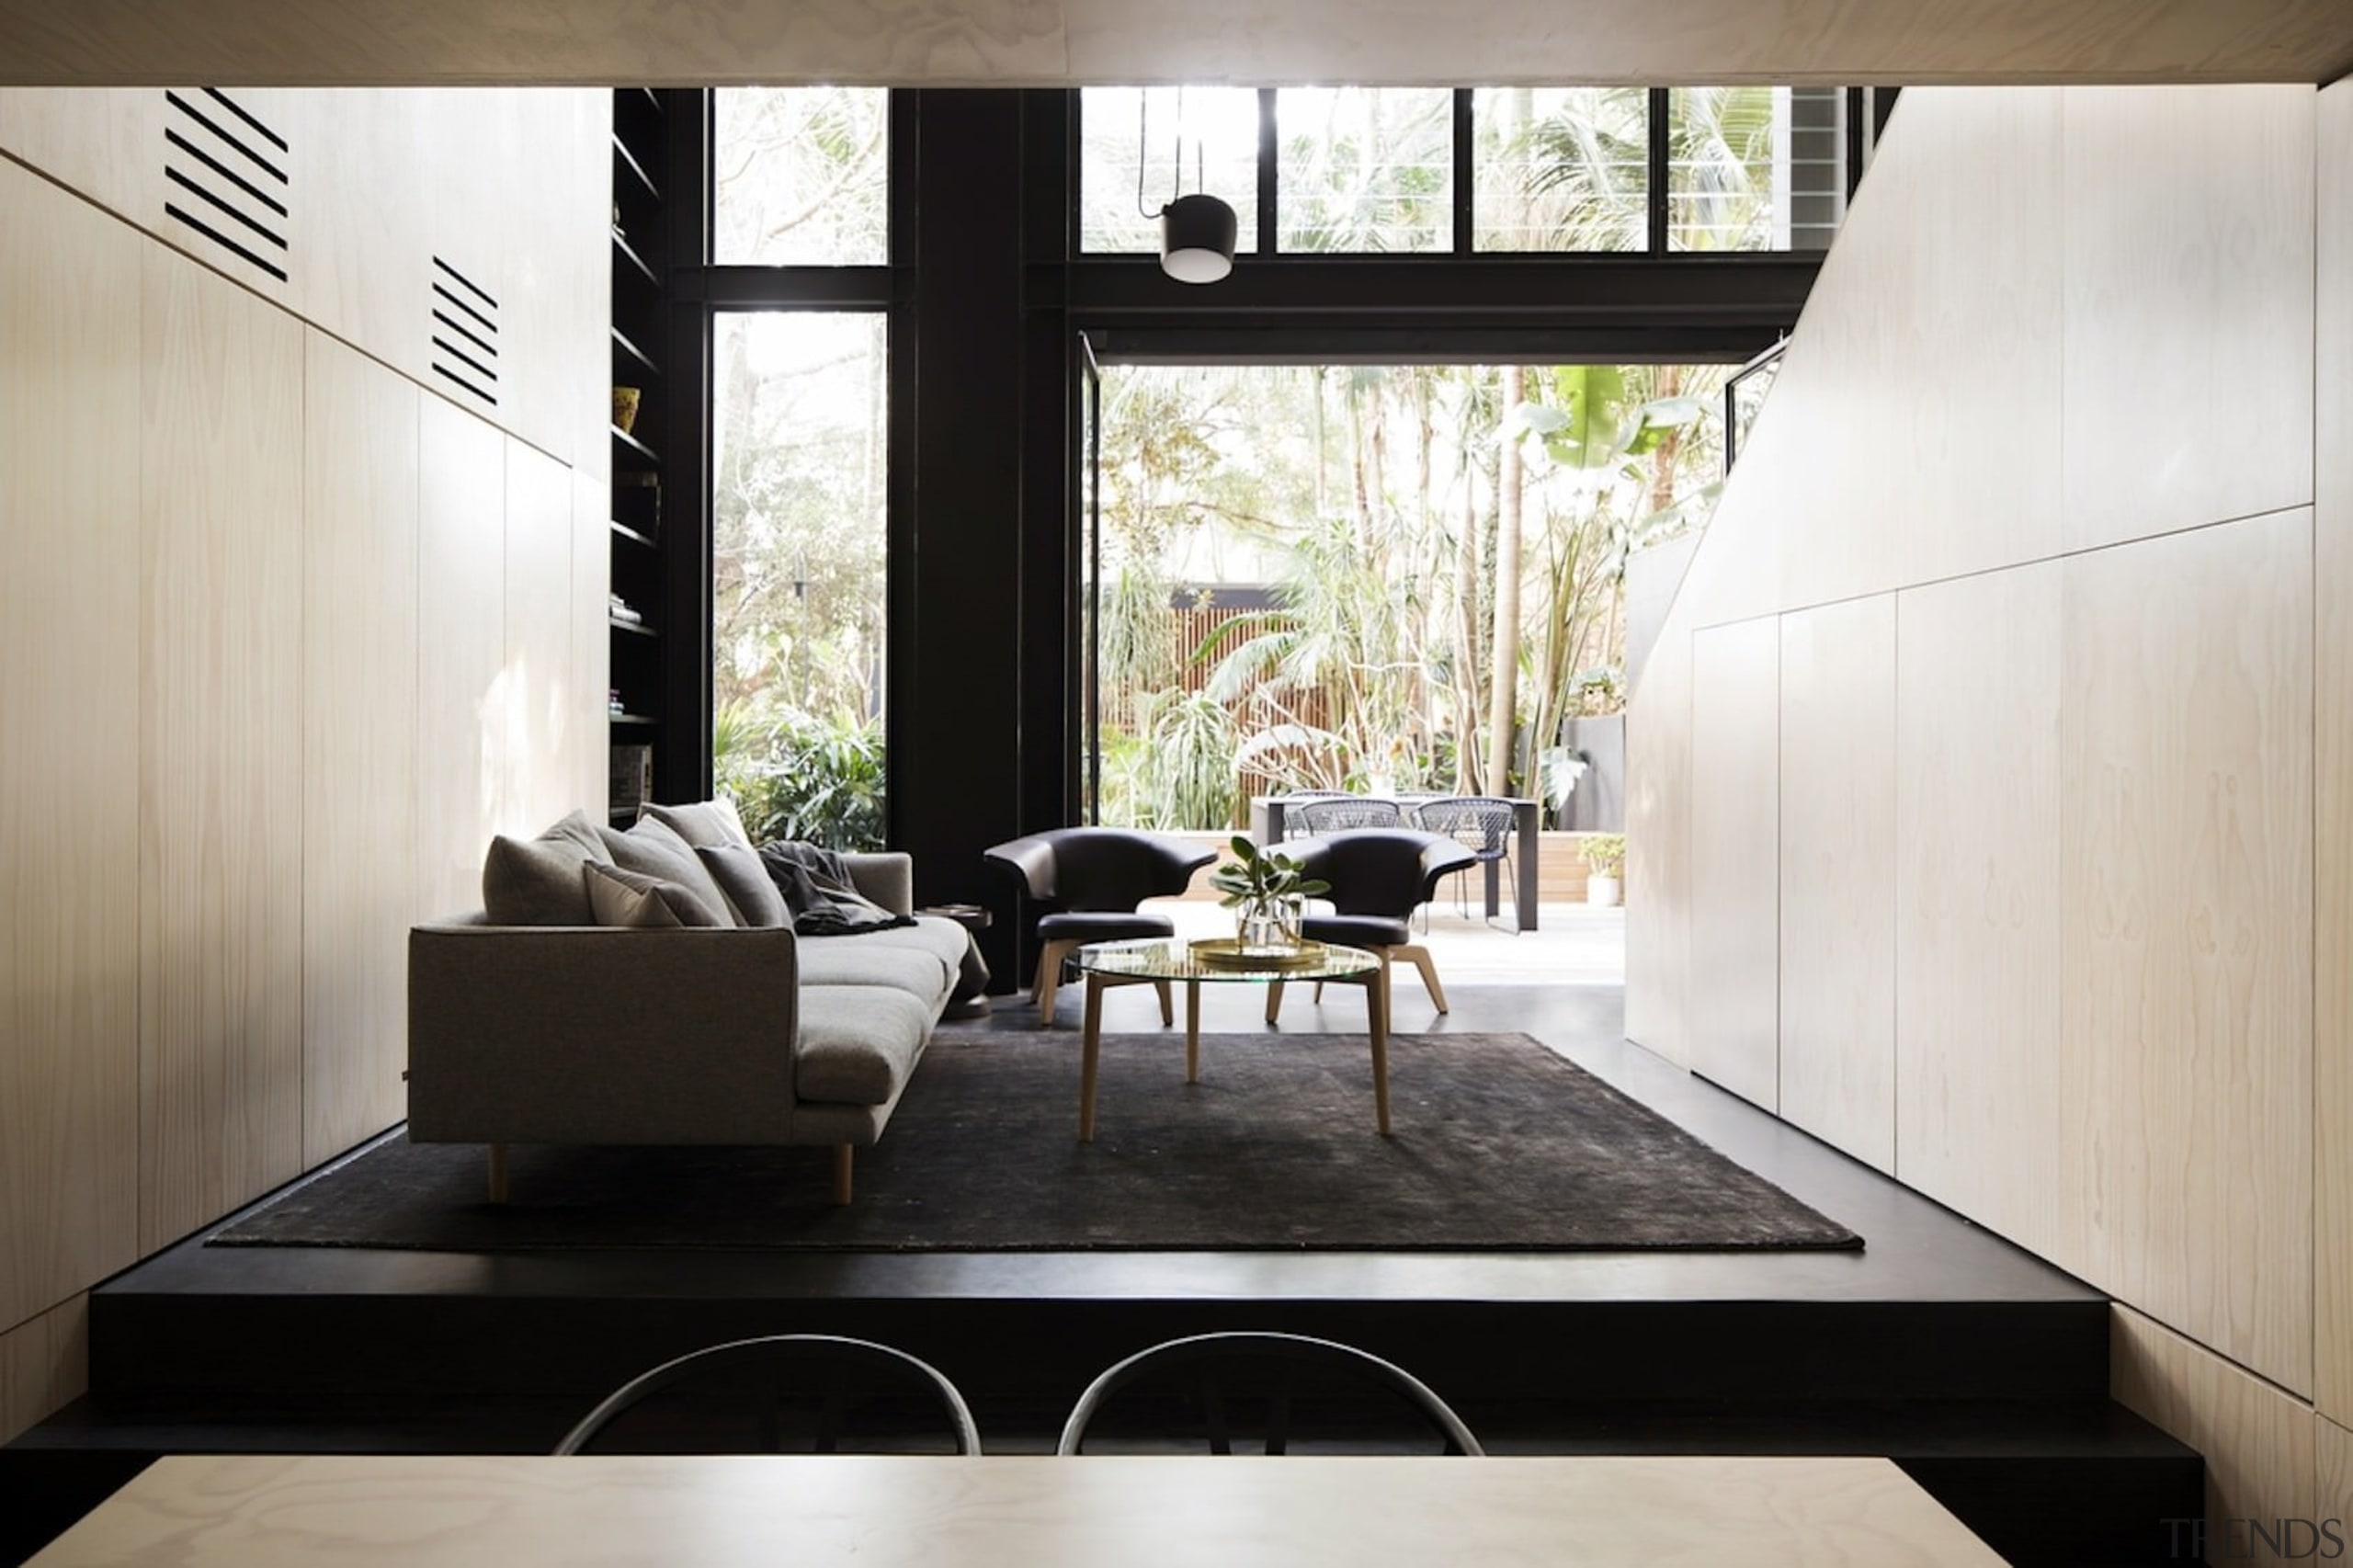 Architect: Architect PrineasPhotography by Chris Warnes architecture, ceiling, floor, flooring, furniture, house, interior design, living room, table, white, black